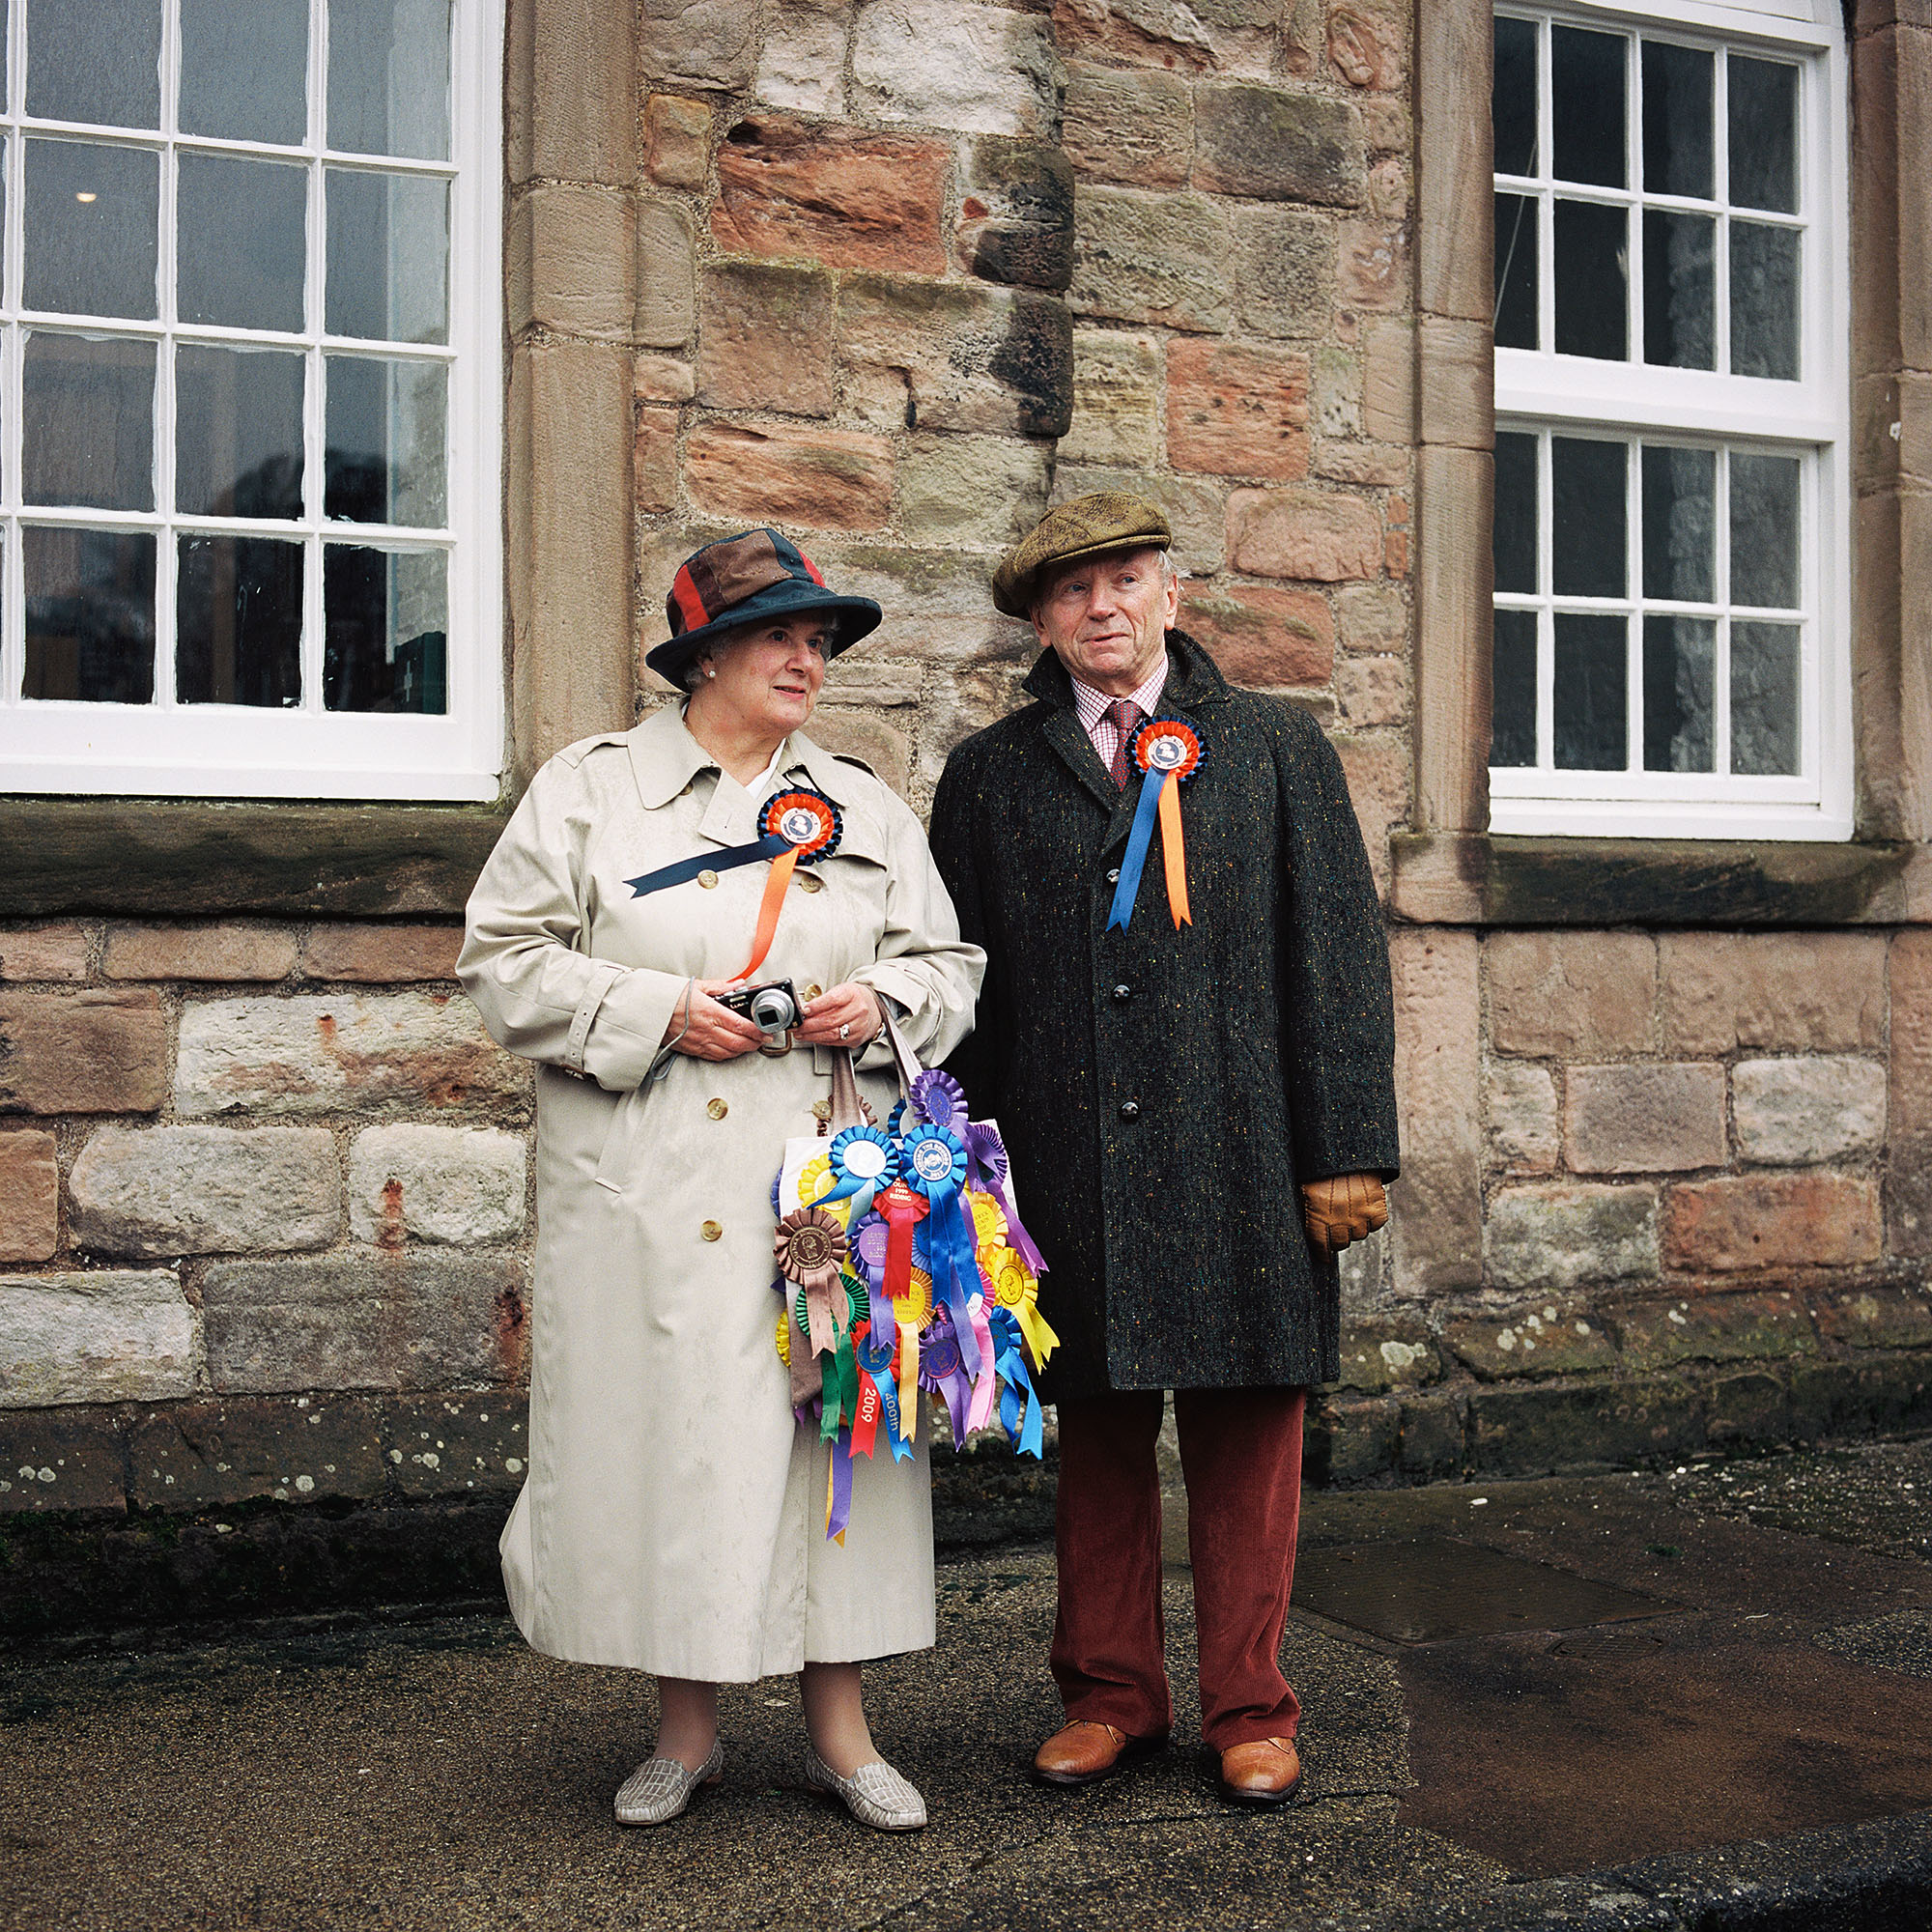 The former mayor of Berwick, Peter Herdman, and his wife Barbara at the Berwick Riding of the Bounds